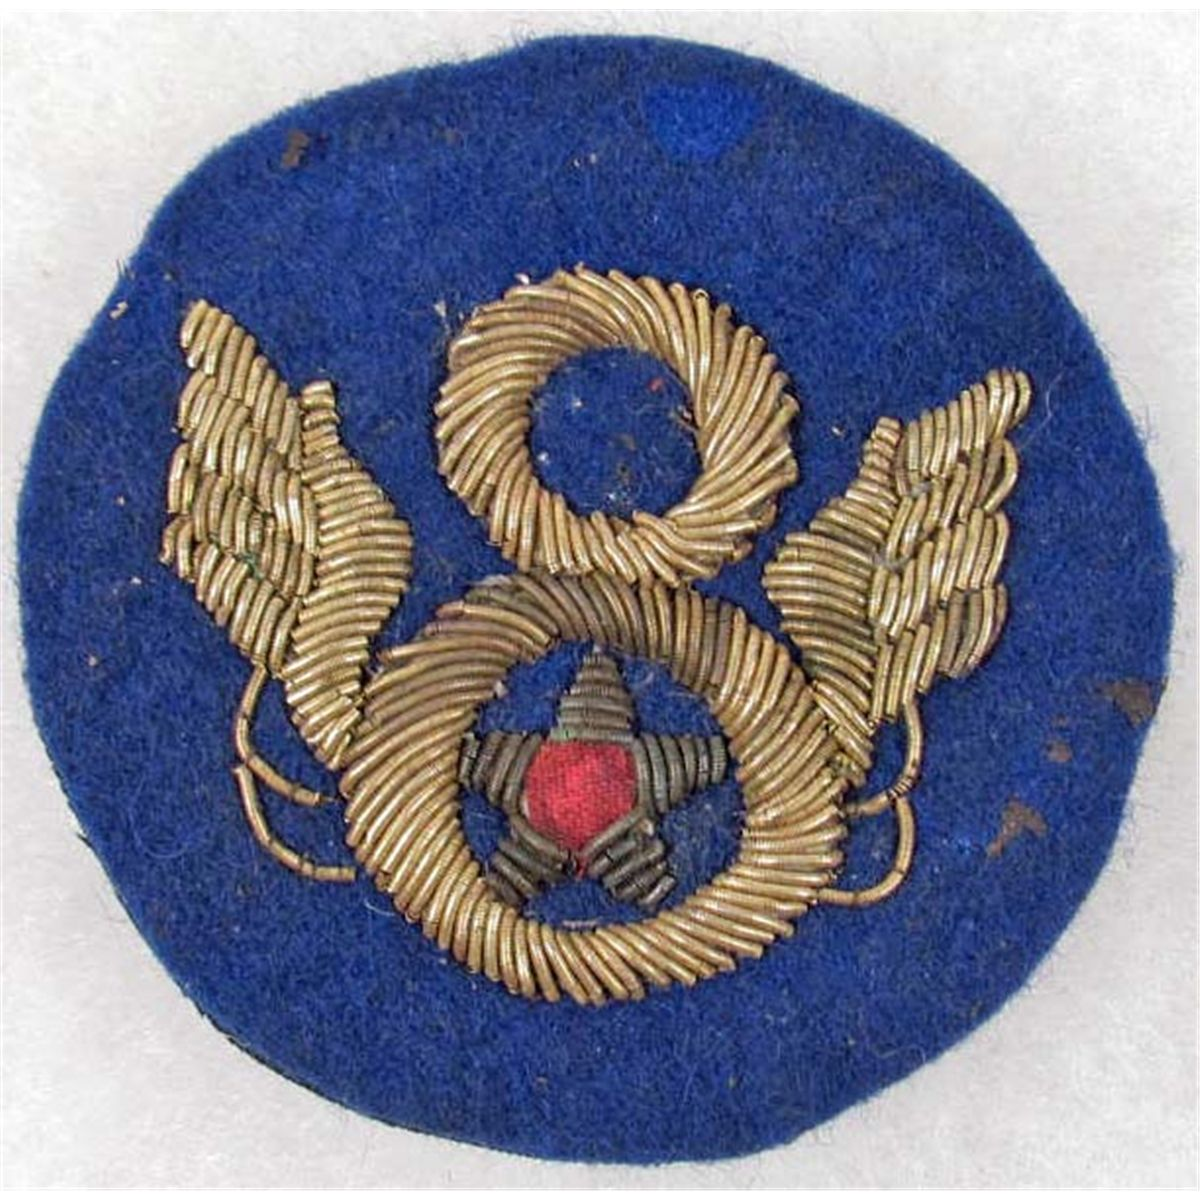 Usaaf Wwii 8th Air Force Army Air Corps Patch Reproduction